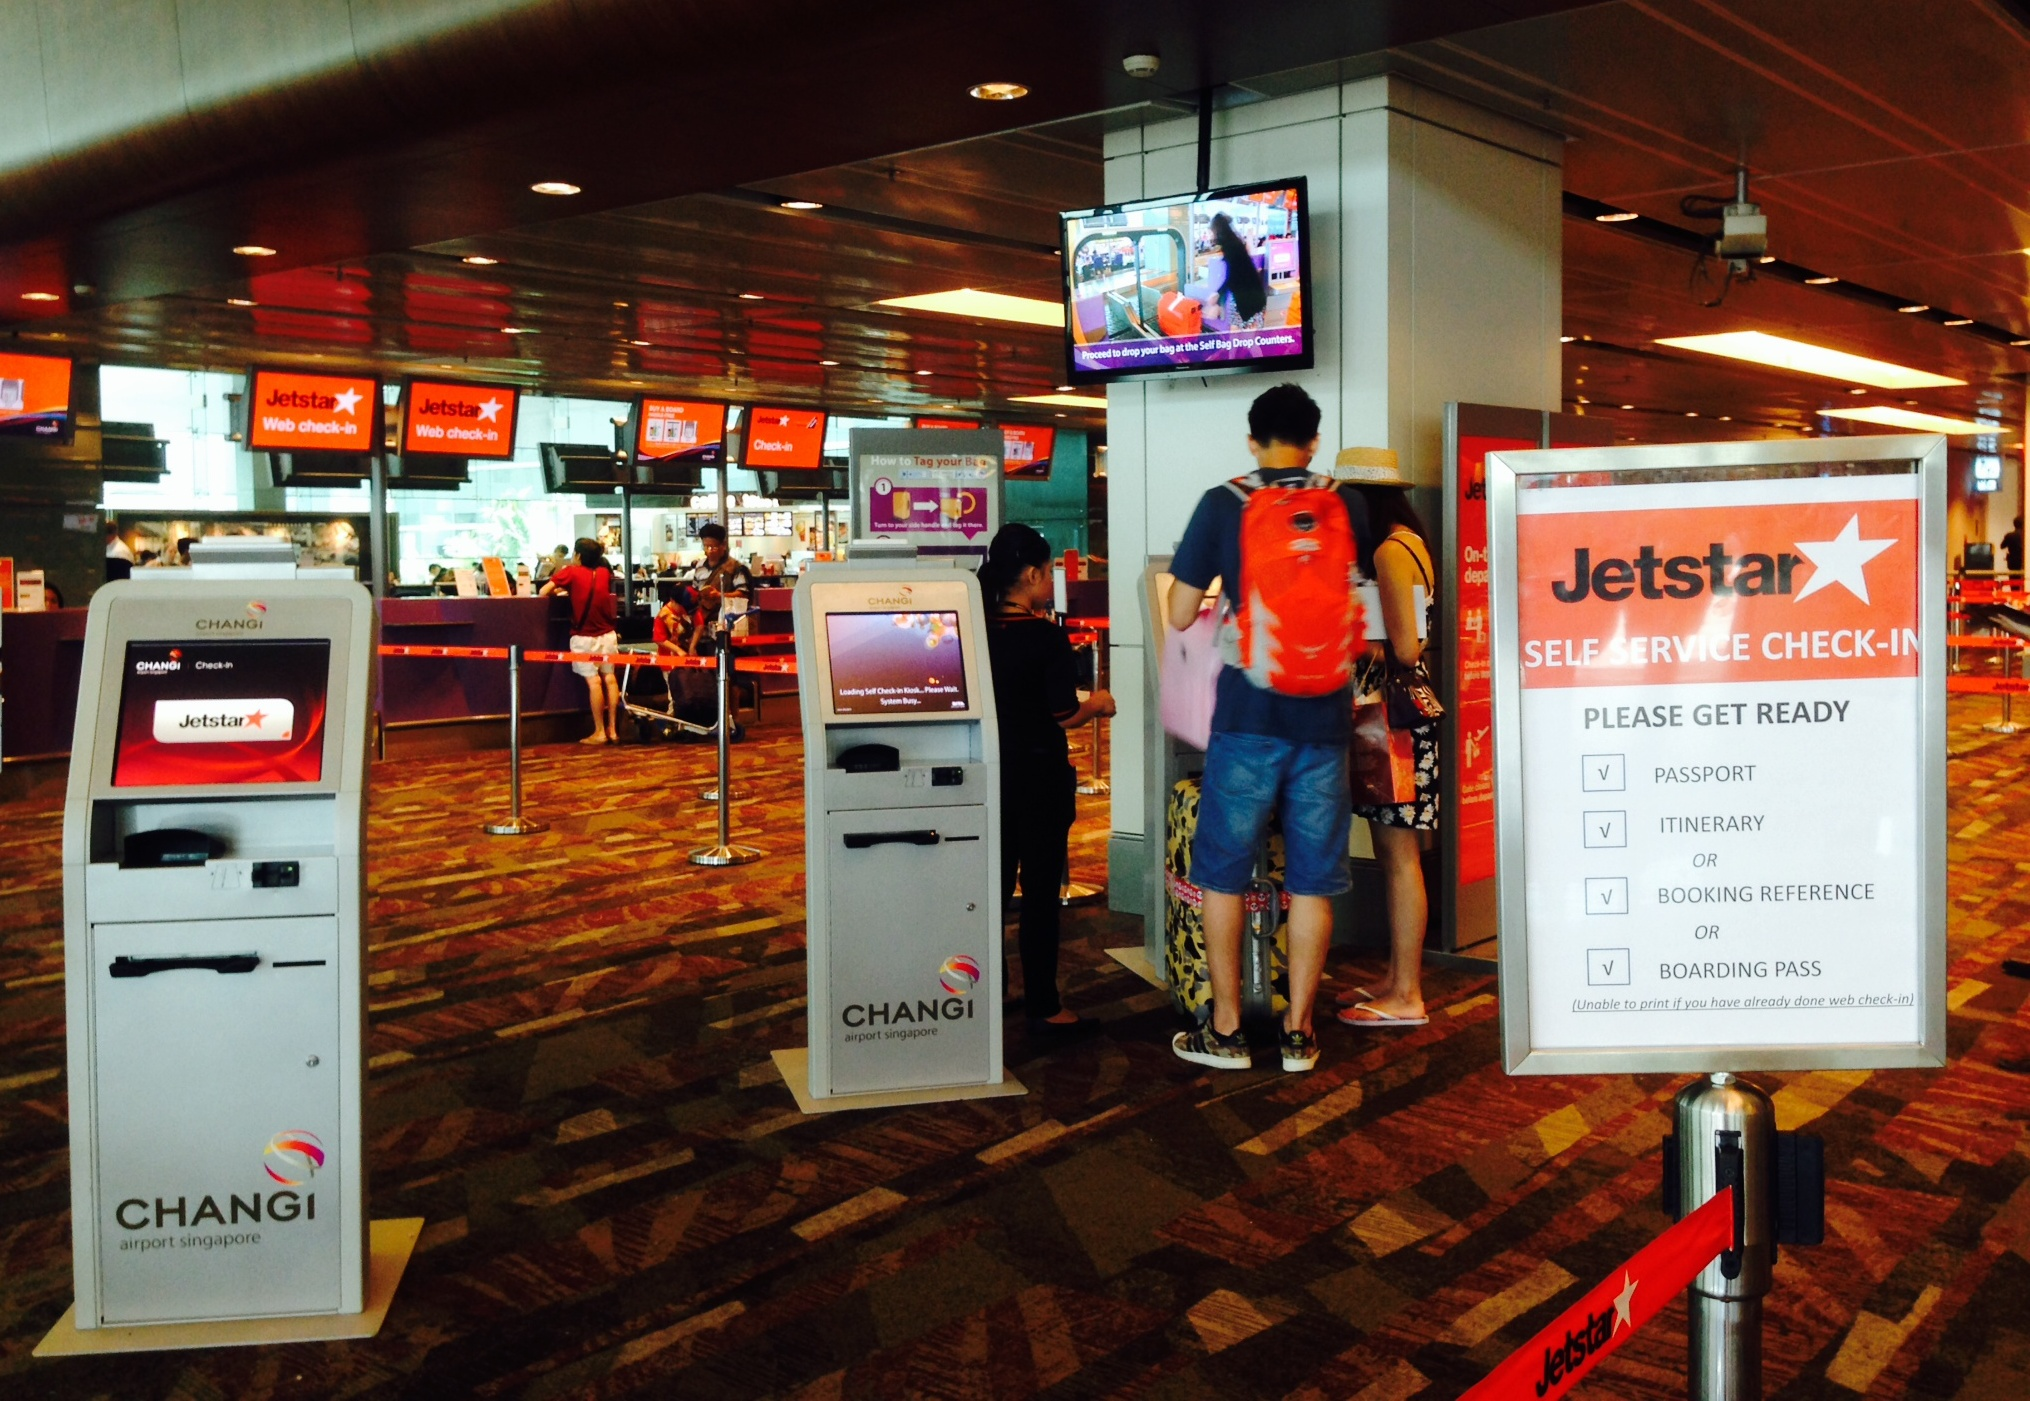 Changi-Airport-Self-Service-Check-Ins-Jetstar